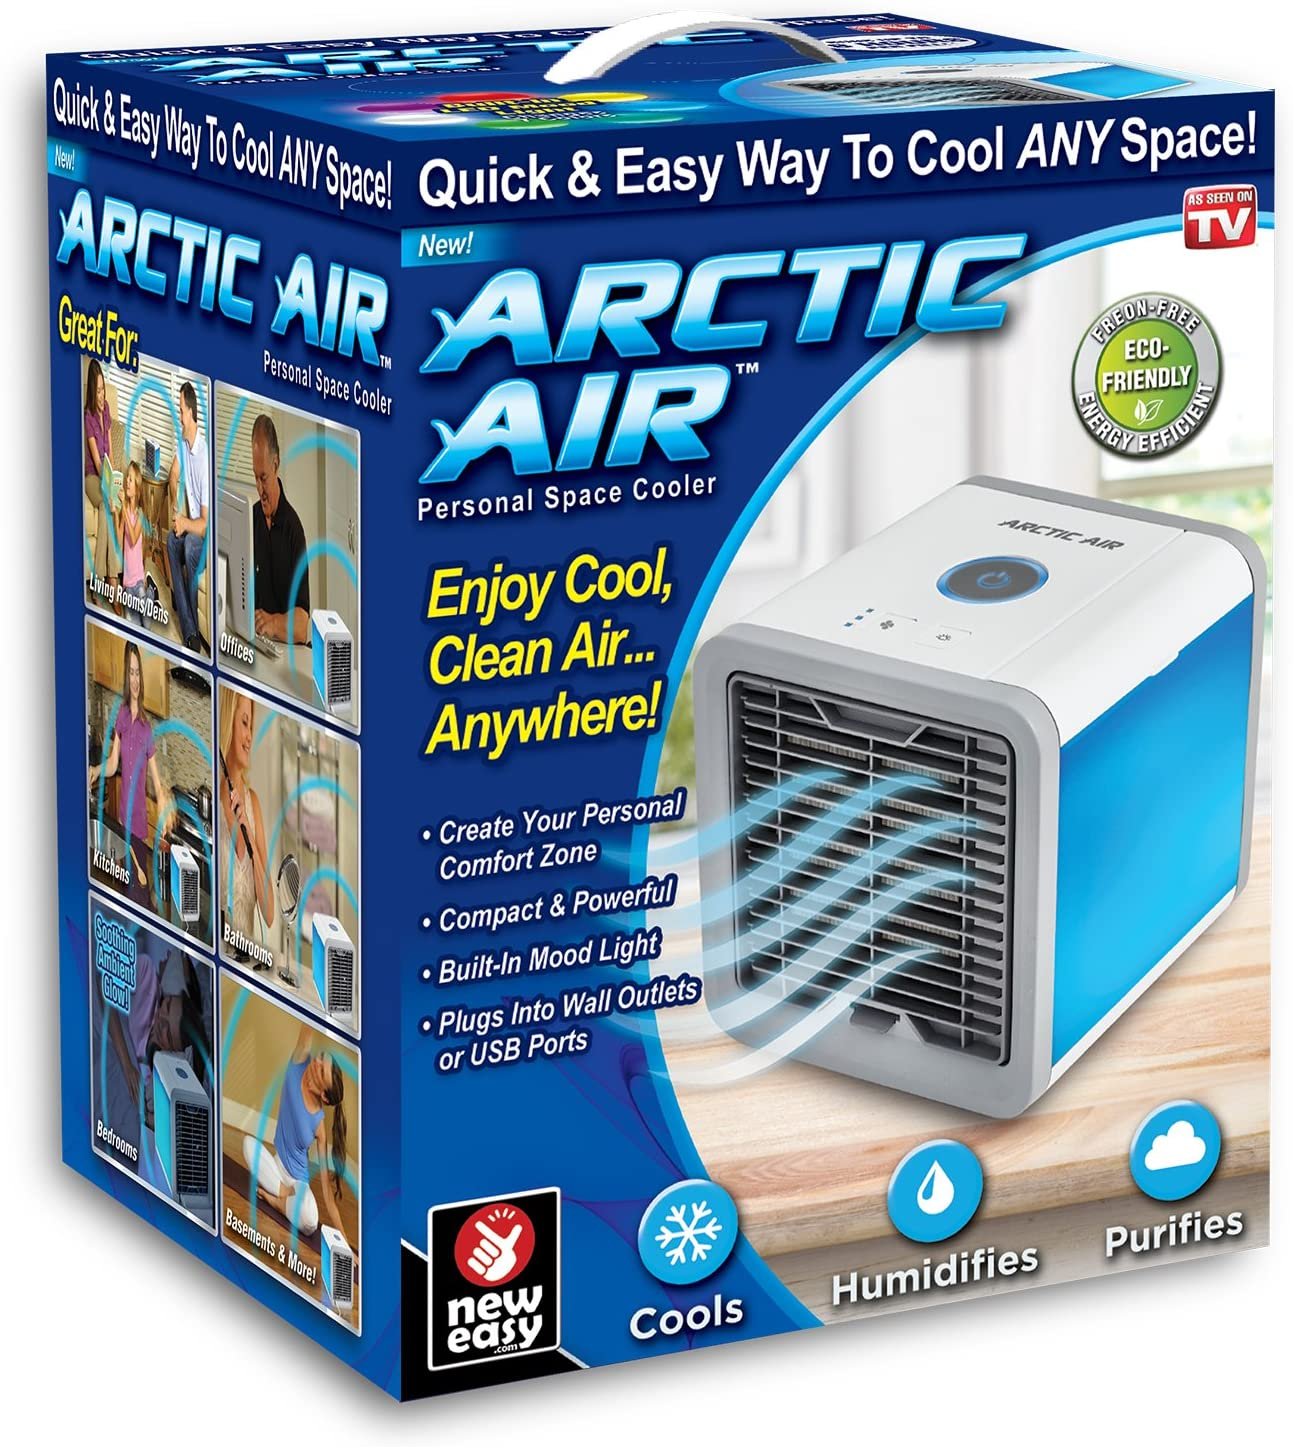 Arctic Blast Reviews-Shocking Review! Read My Experience! 7